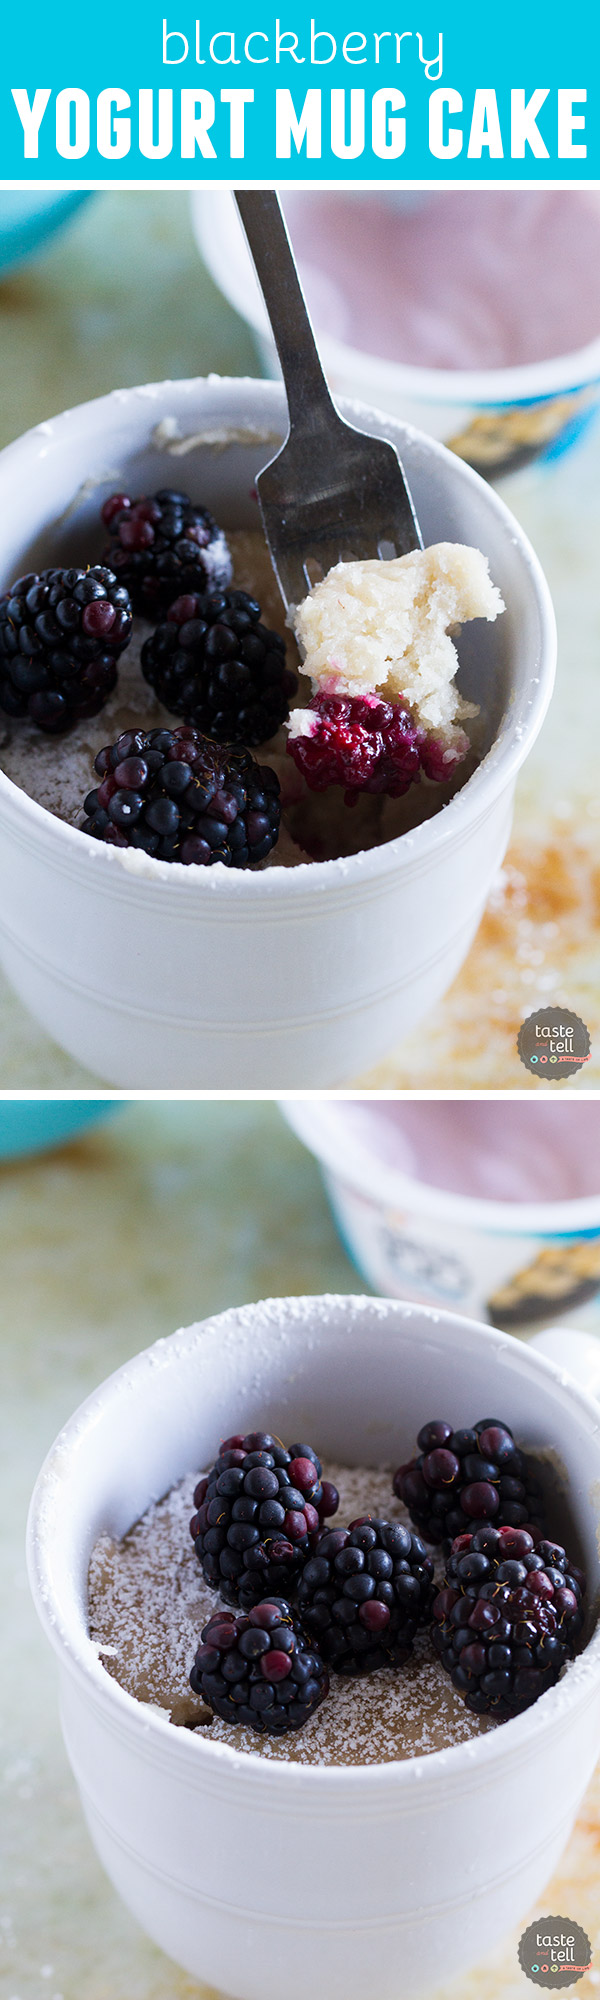 Craving something sweet but don't want to make a whole cake? This Blackberry Yogurt Mug Cake is your 7 minute answer to dessert!